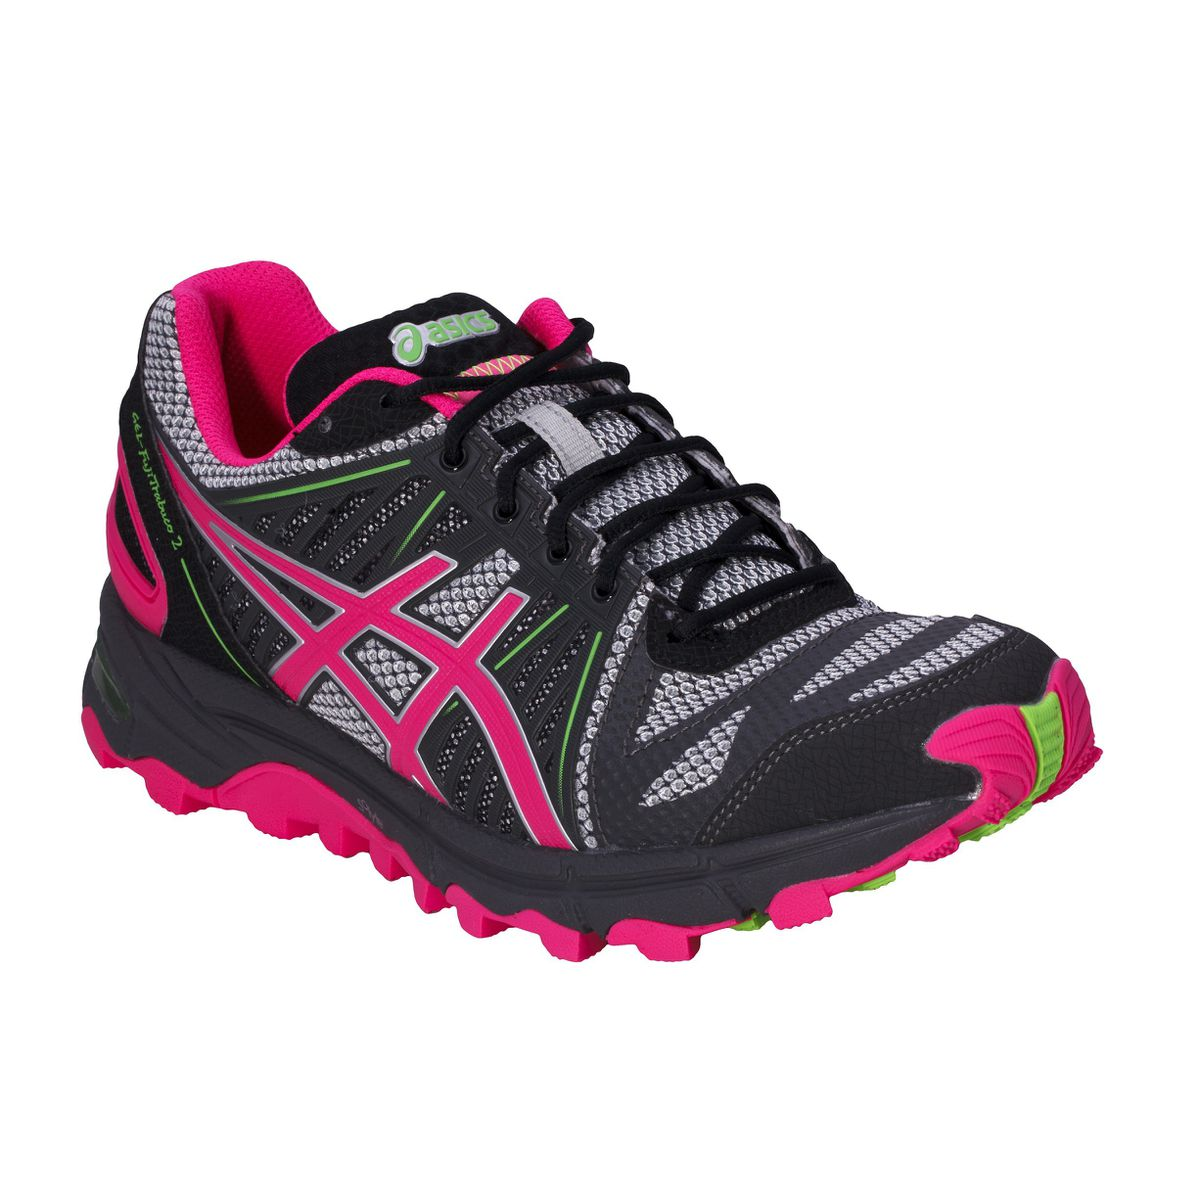 zcpuf75v buy asics gel fuji trabuco 3 womens trail running shoes. Black Bedroom Furniture Sets. Home Design Ideas